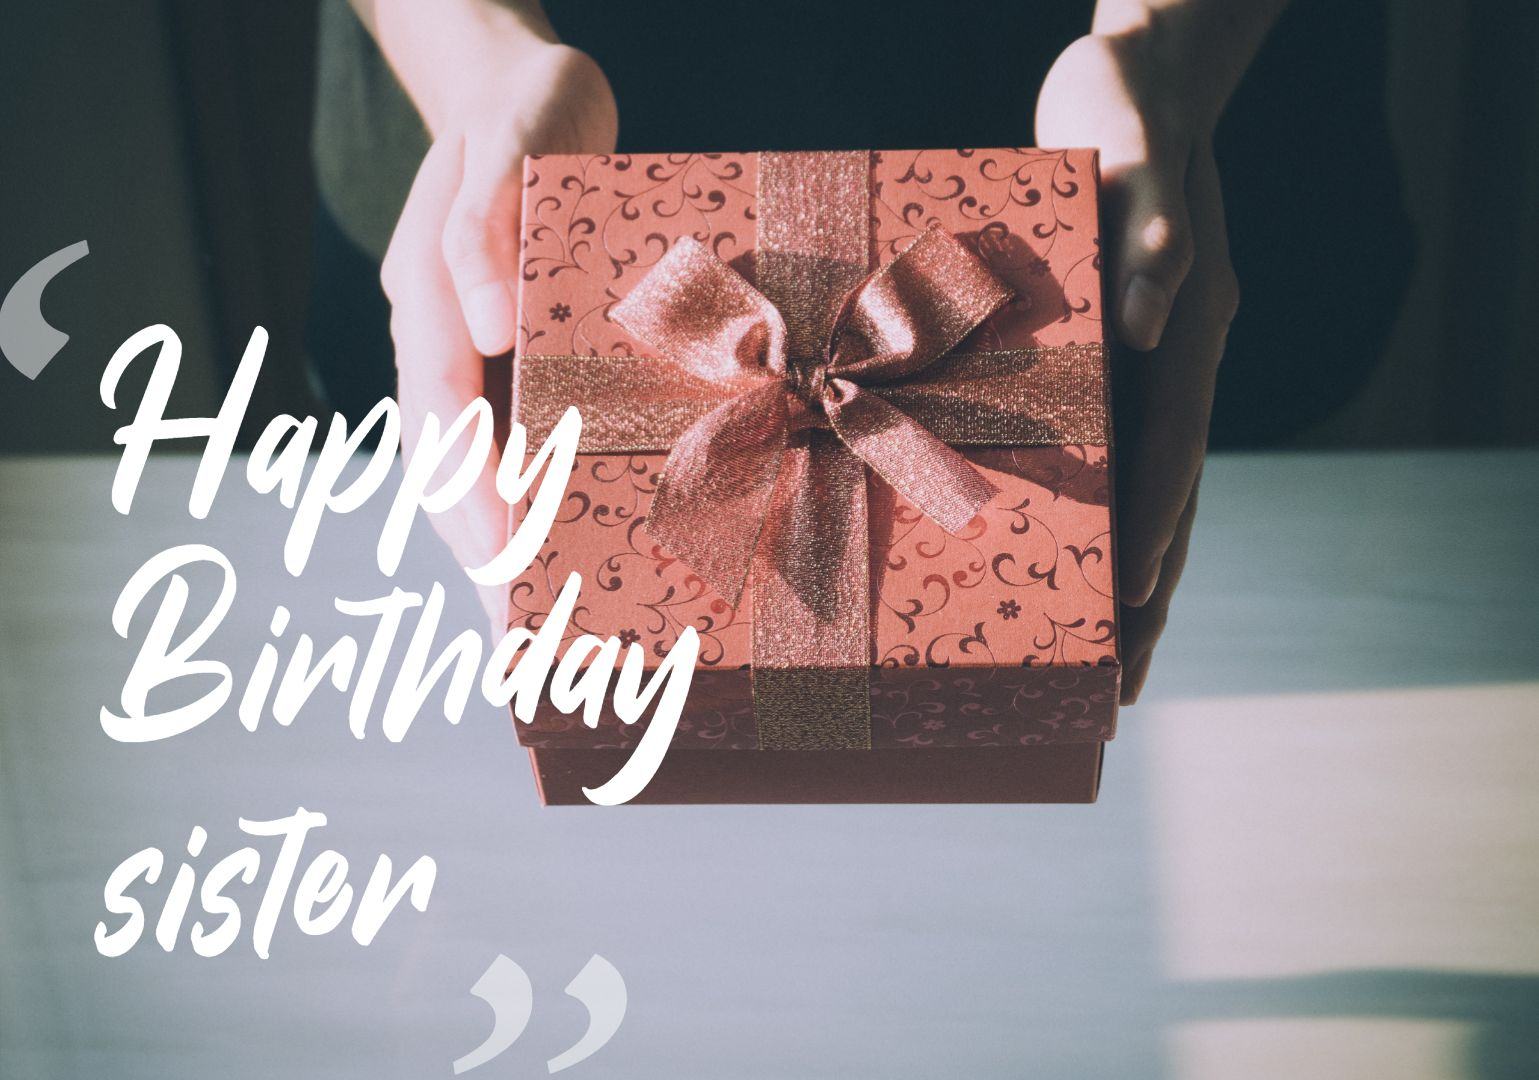 gift images for happy birthday